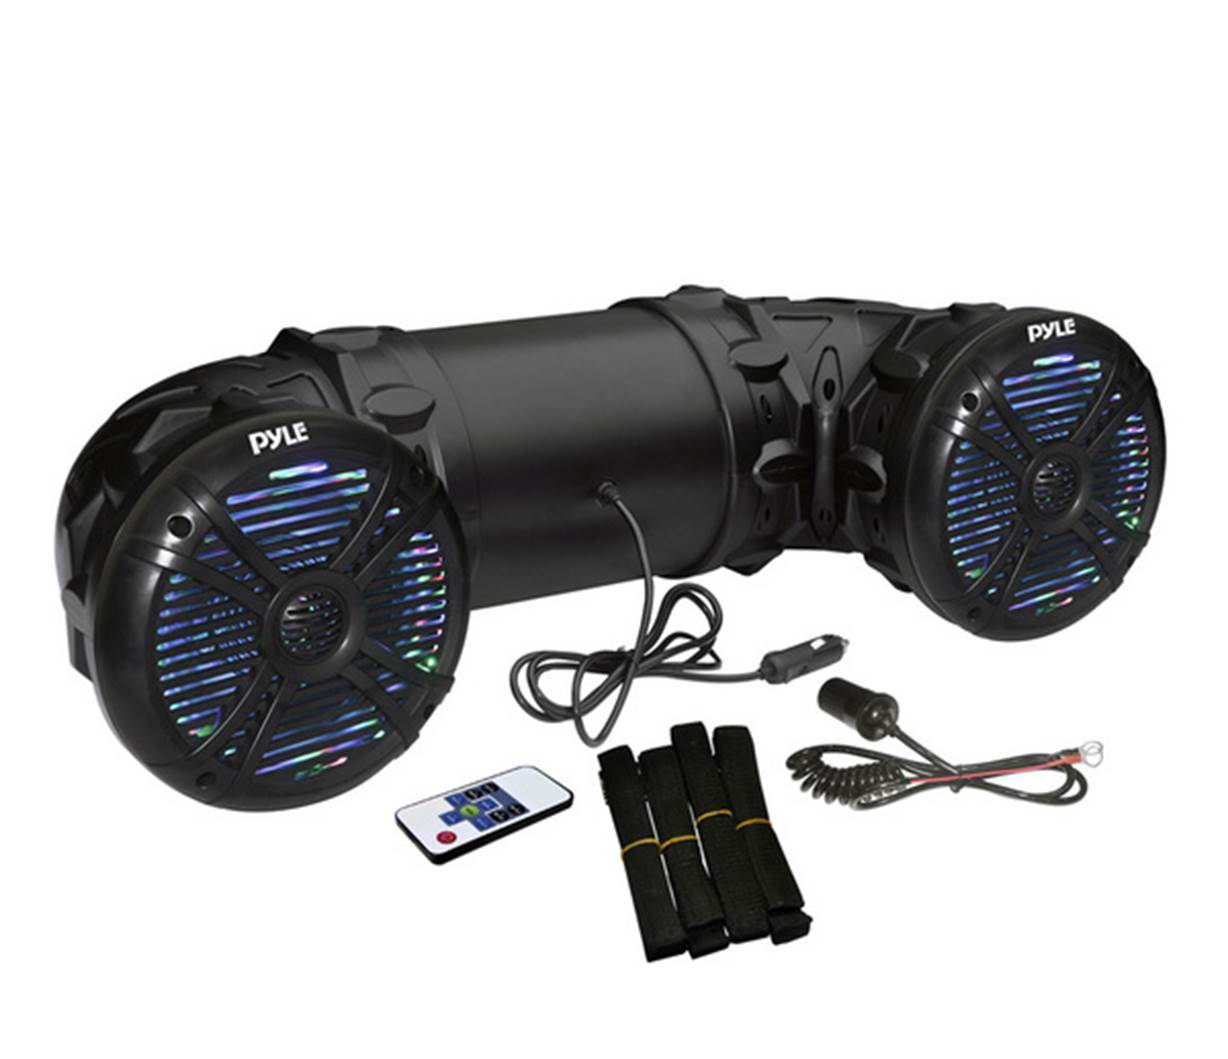 Pyle Marine 800 Watt Waterproof ATV Speakers